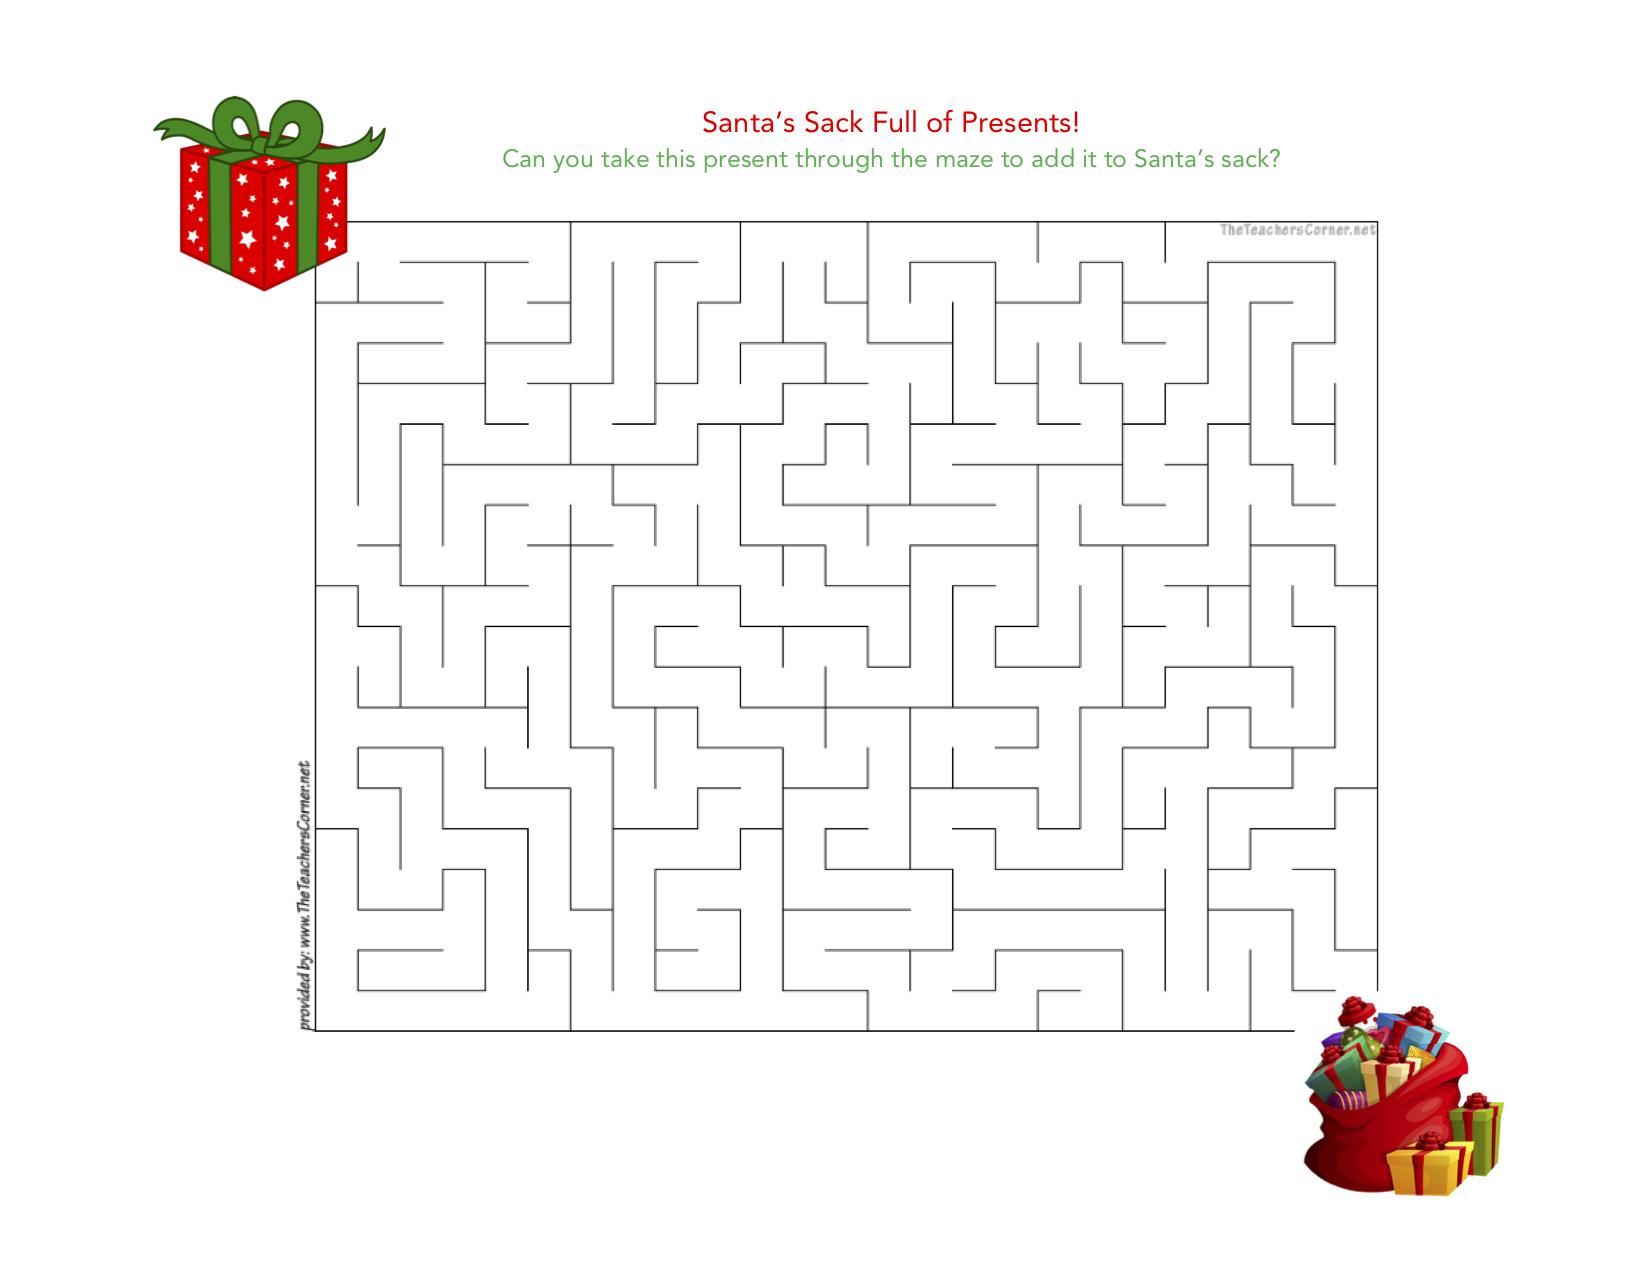 celebrate-picture-books-picture-book-review-santa's-sack-maze-puzzle